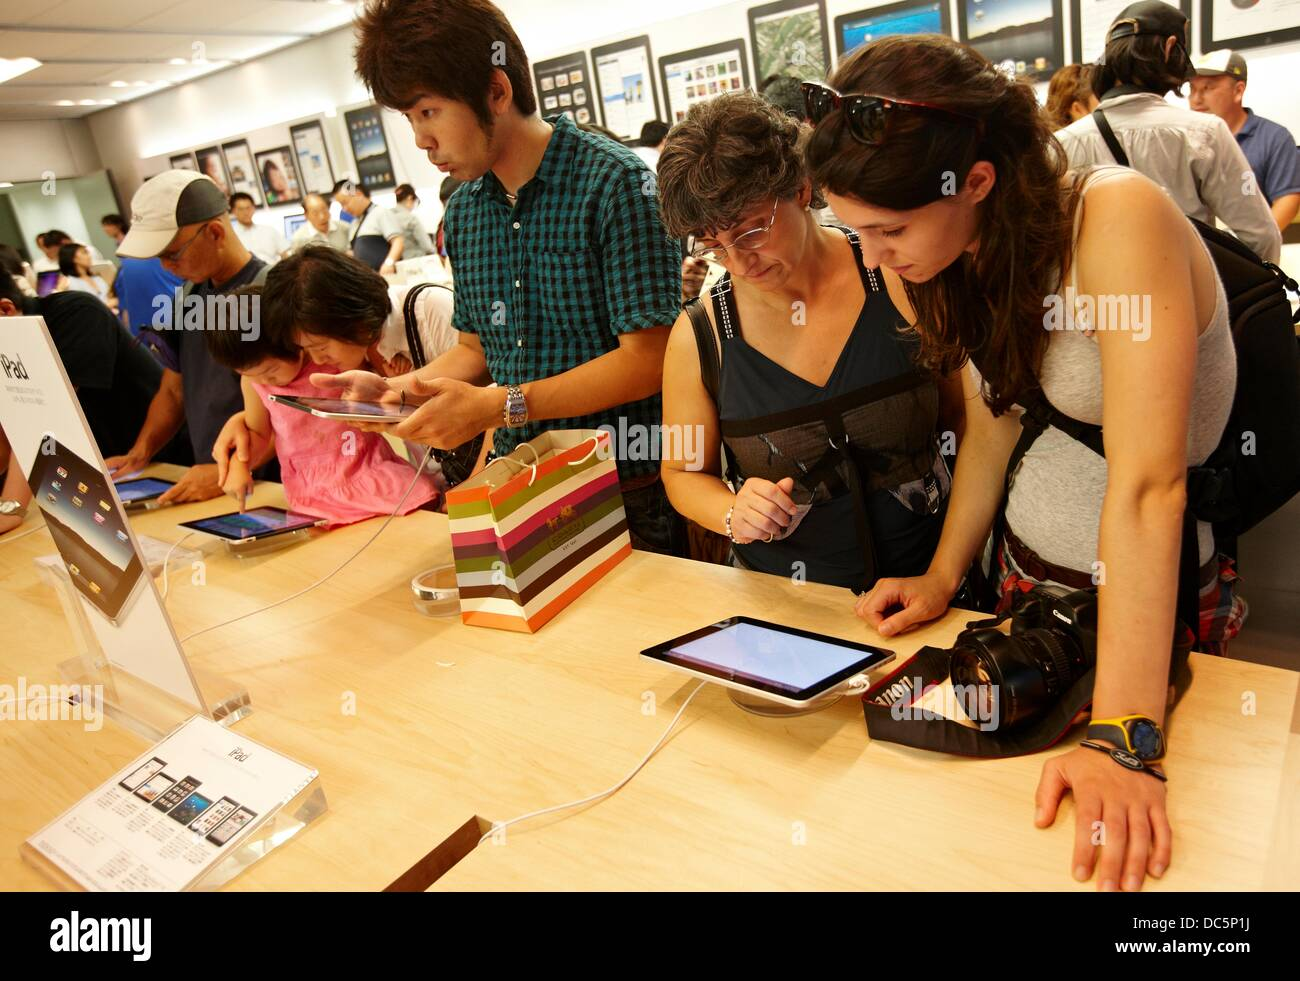 Apple store, Ginza, Shopping area, Tokyo, Japan. Stock Photo